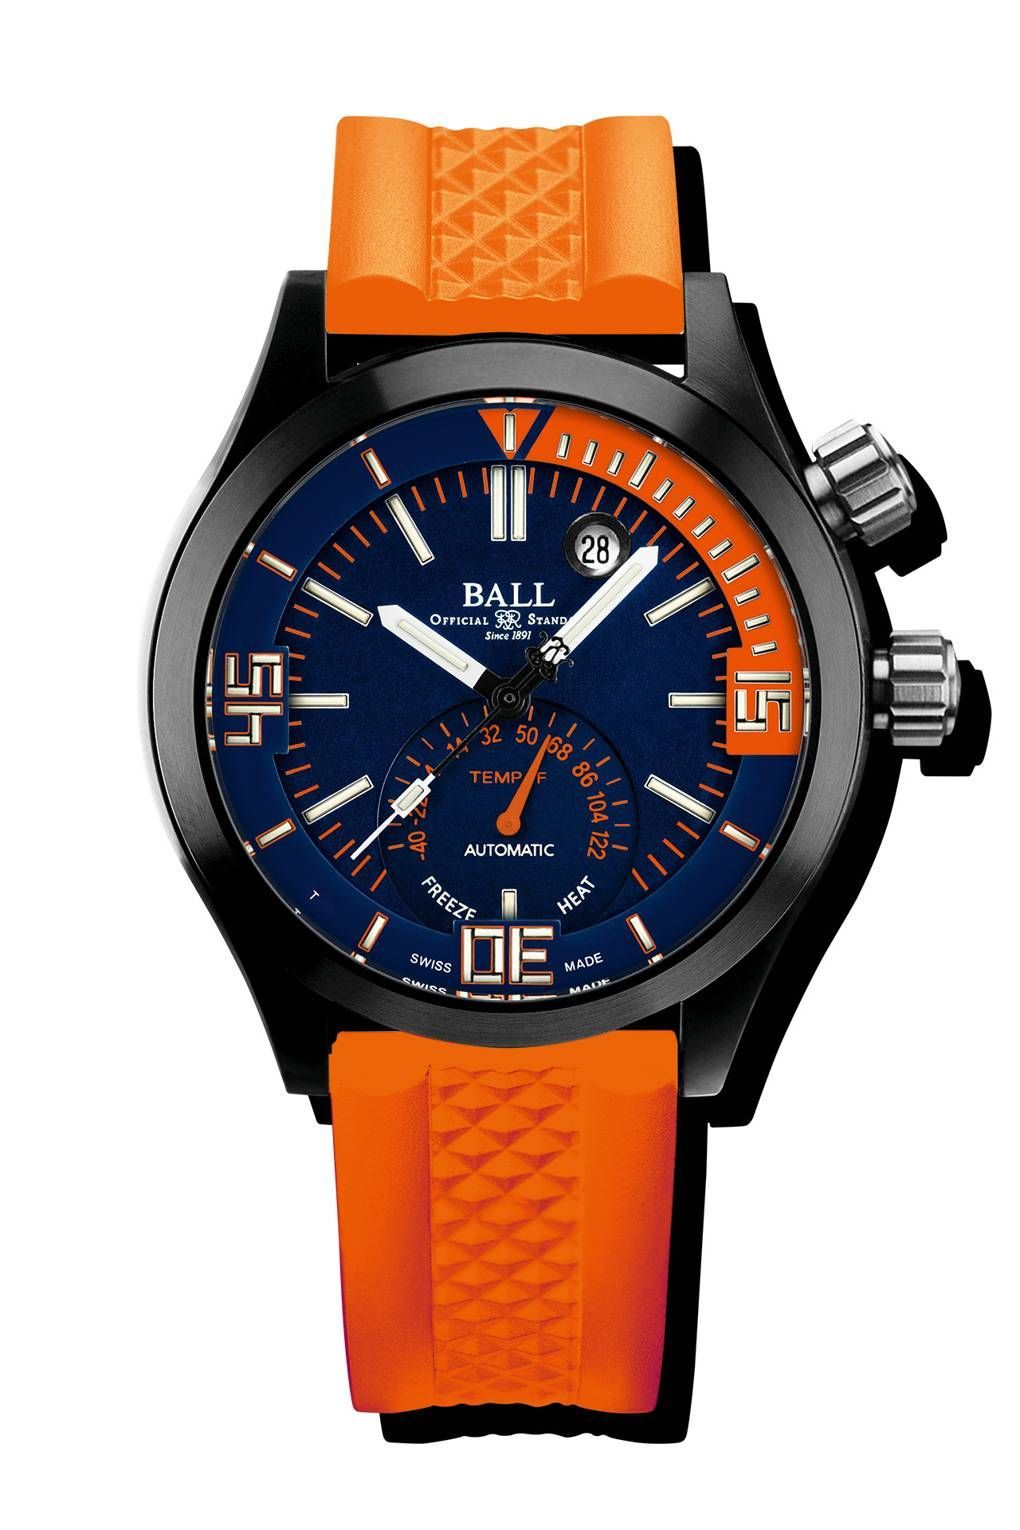 Ball Watch Co The Engineer Master II Diver TMT is one of our favourite  underwater watches of 2018 cb9a59ae61d